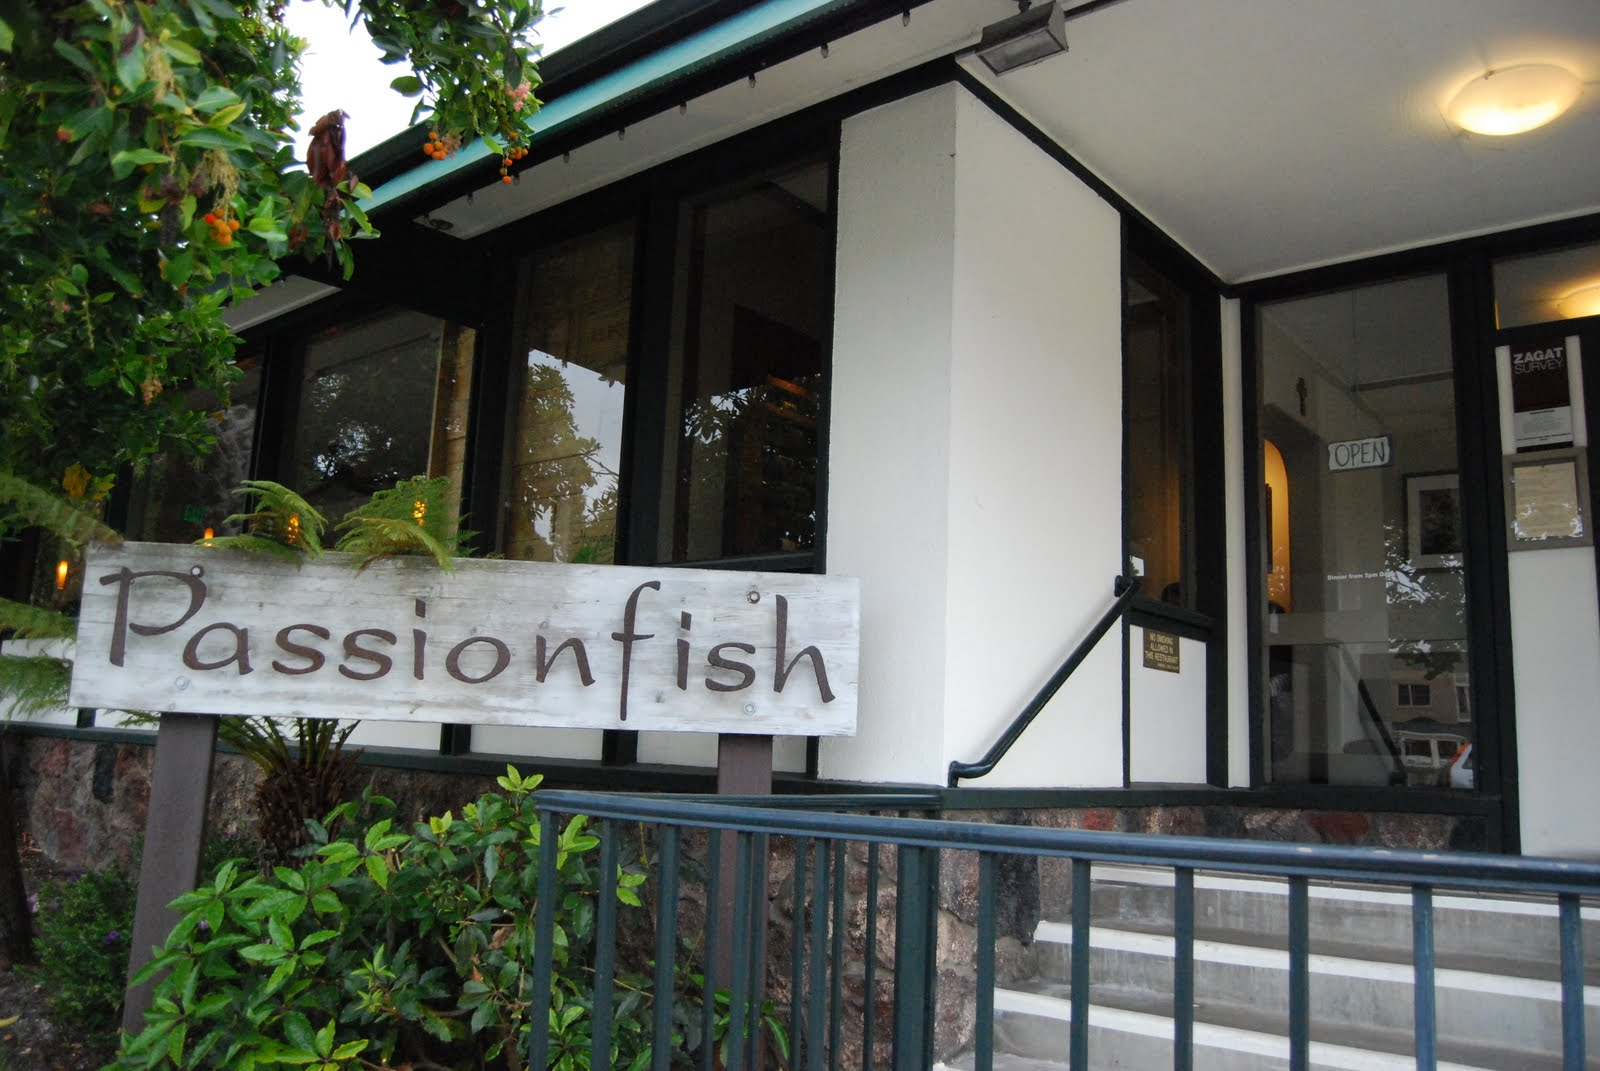 Passionfish dress code for Passion fish monterey